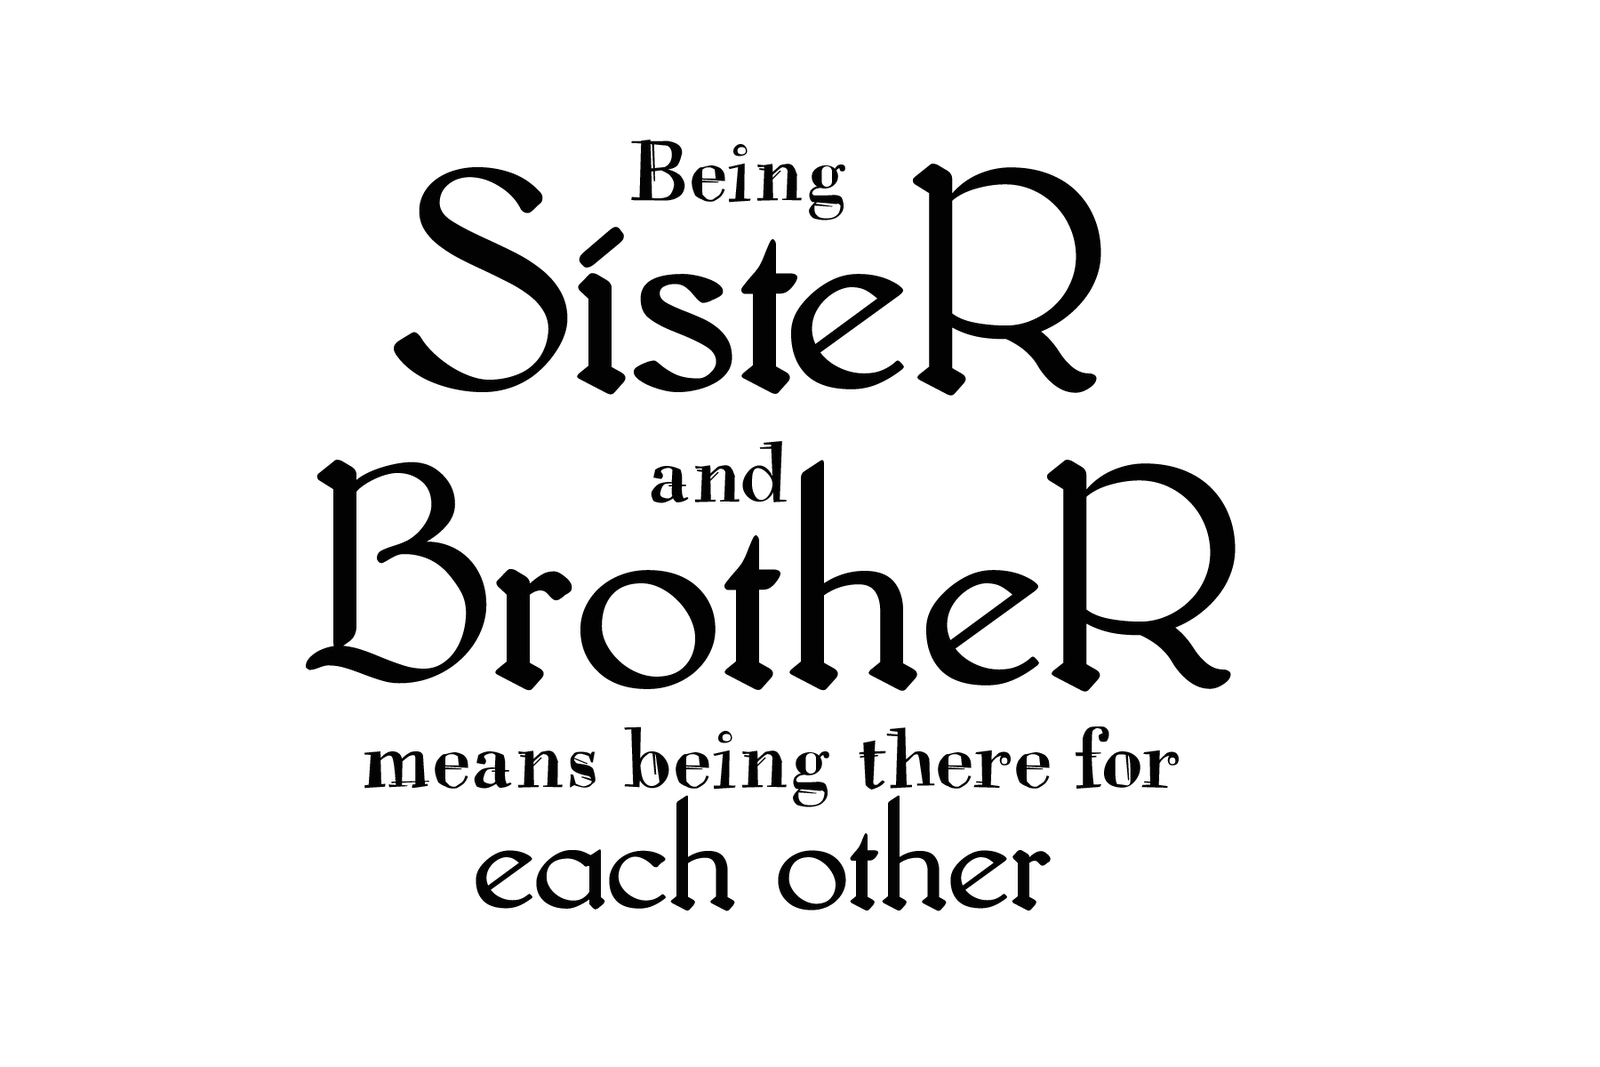 Sister And Brother Inspiredmommiedesigns Png Image Sibling Quotes Brother N Sister Quotes Brother Quotes